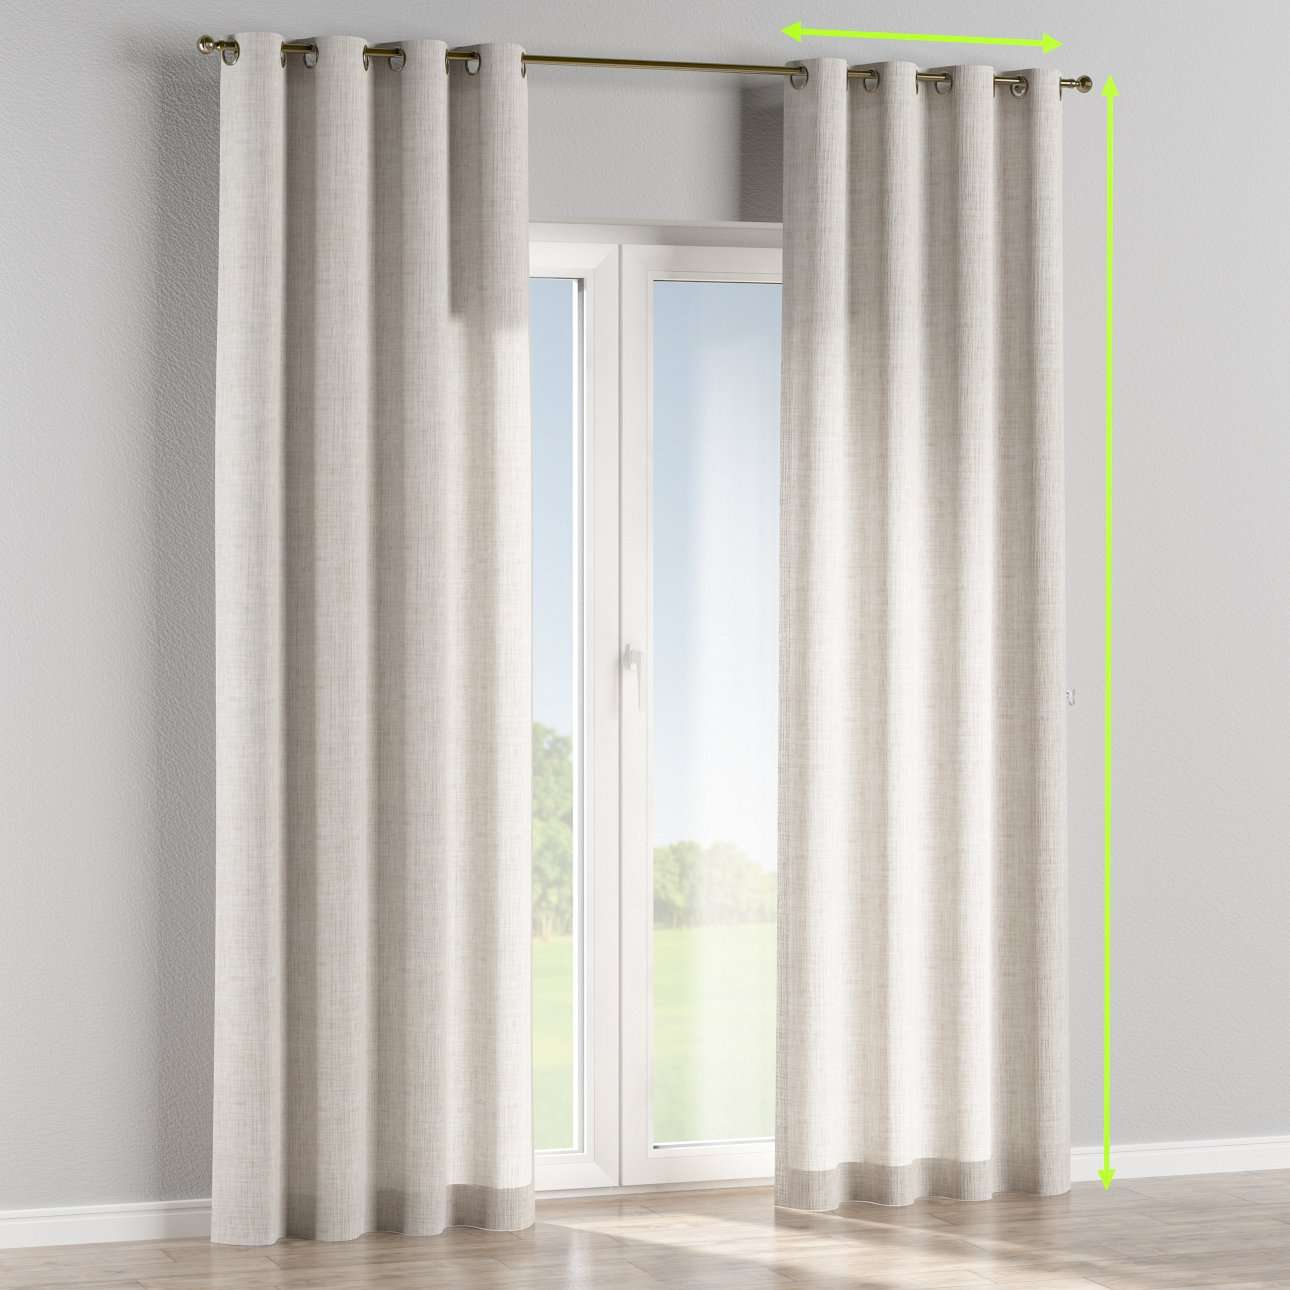 Eyelet curtains in collection Aquarelle, fabric: 140-75